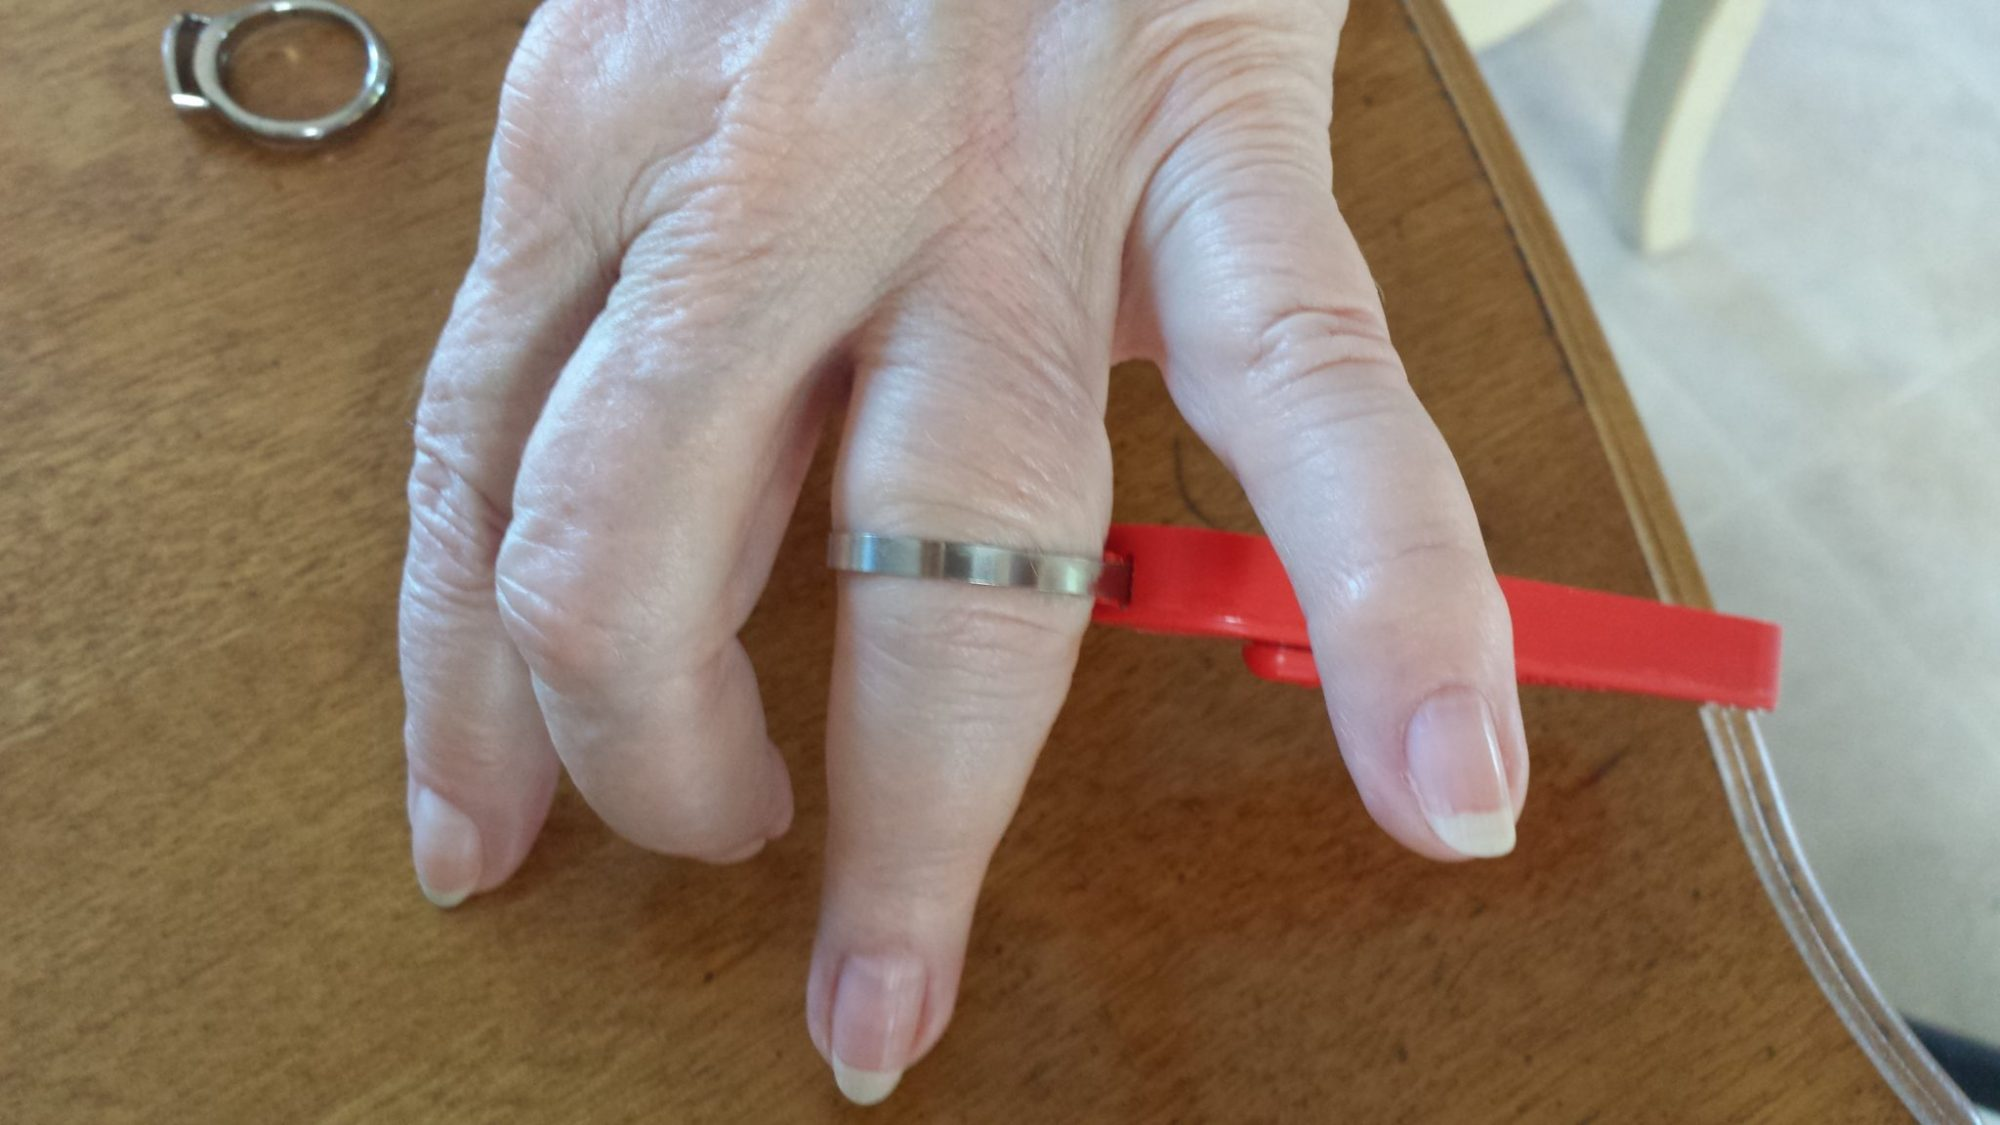 Large knuckle being measured